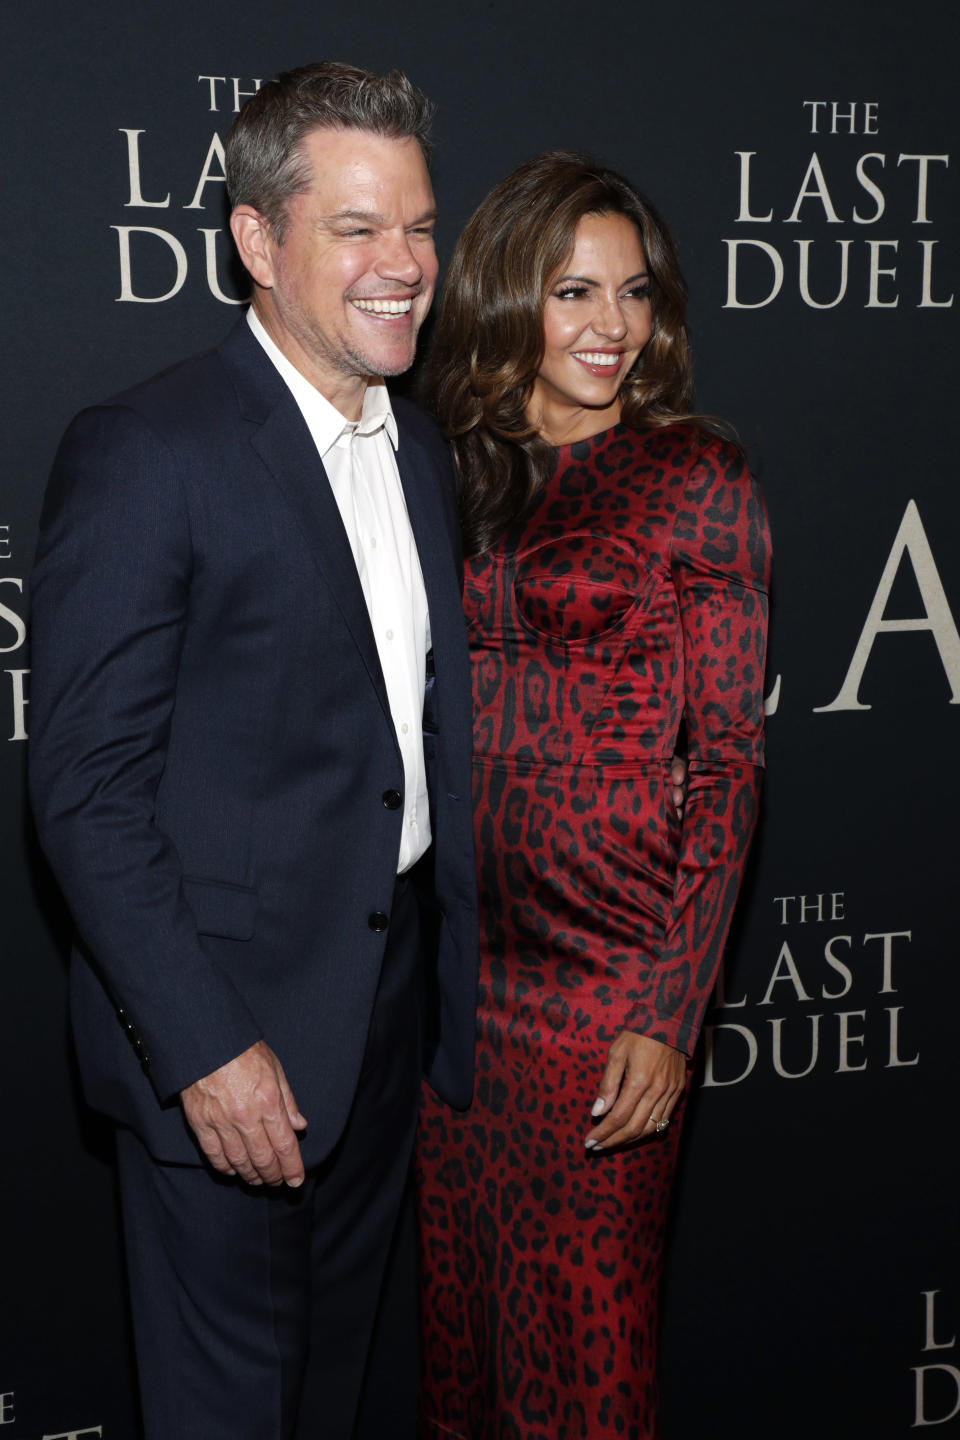 NEW YORK, NEW YORK – OCTOBER 09: Matt Damon (L) and Luciana Barroso attend The Last Duel New York Premiere on October 09, 2021 in New York City. (Photo by Astrid Stawiarz/Getty Images for 20th Century Studios) - Credit: Getty Images for 20th Century Studios